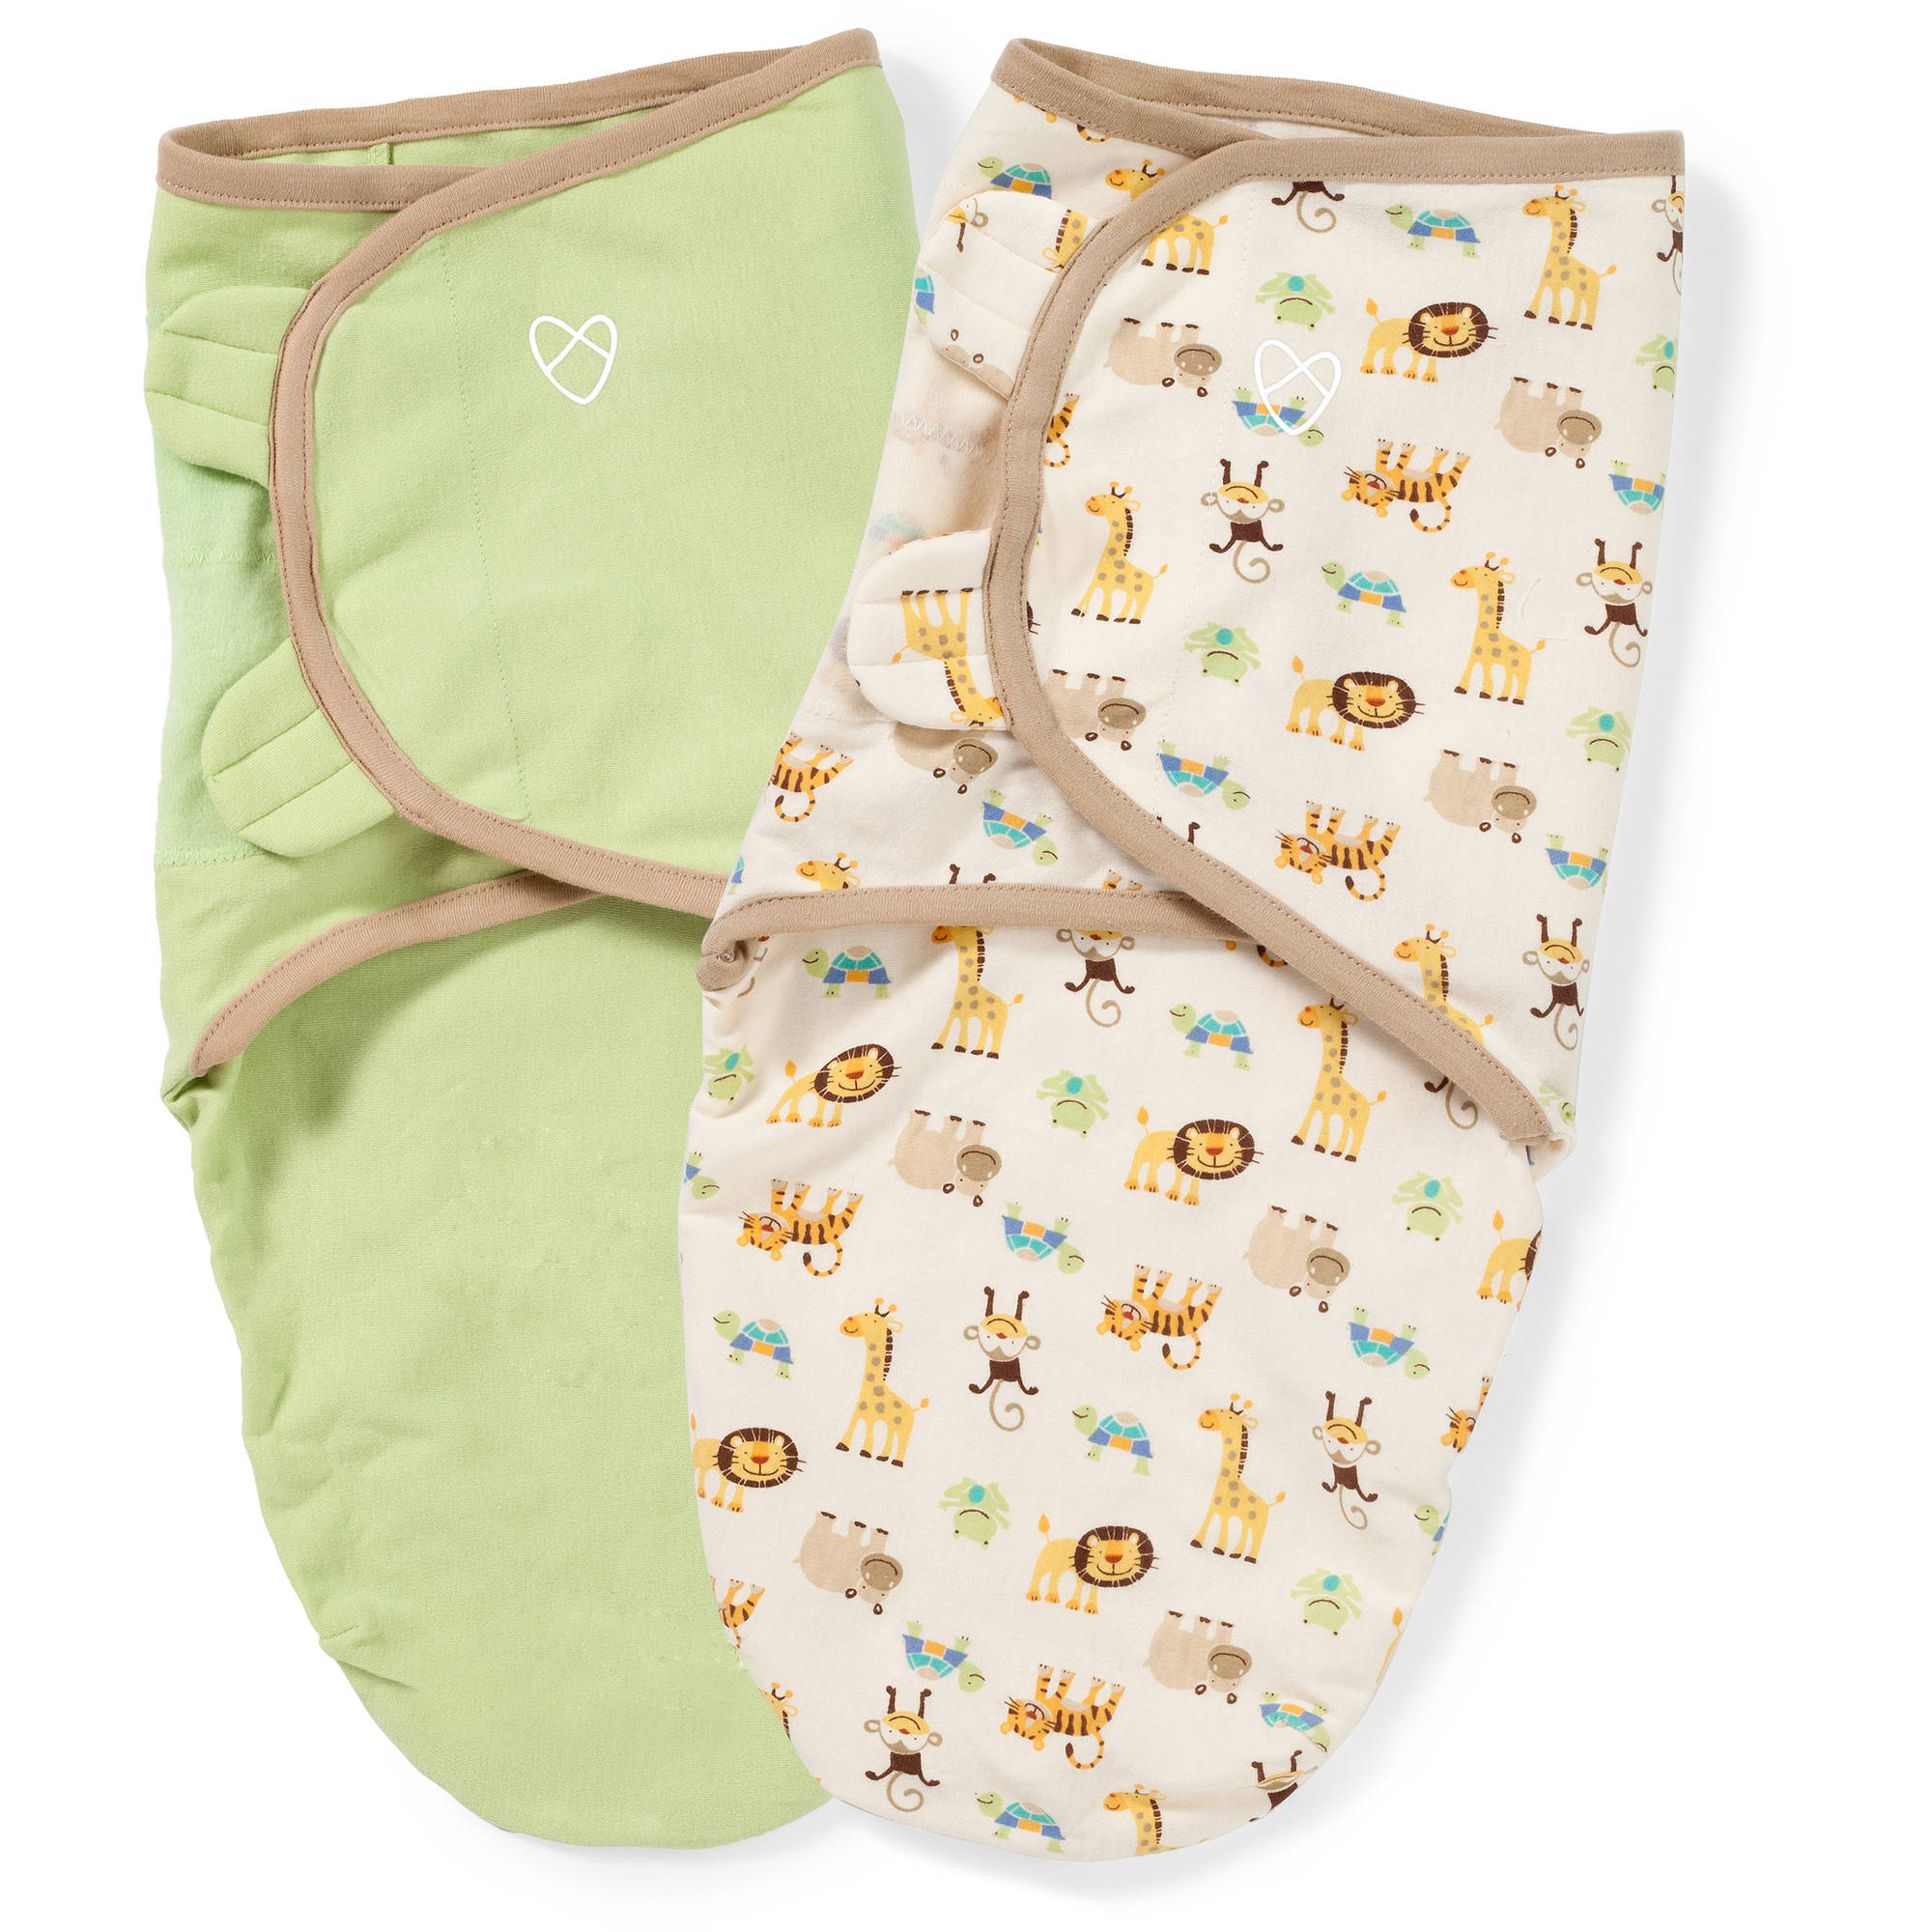 SwaddleMe Original Organic Swaddle, 2-Pack, Zoo, Small